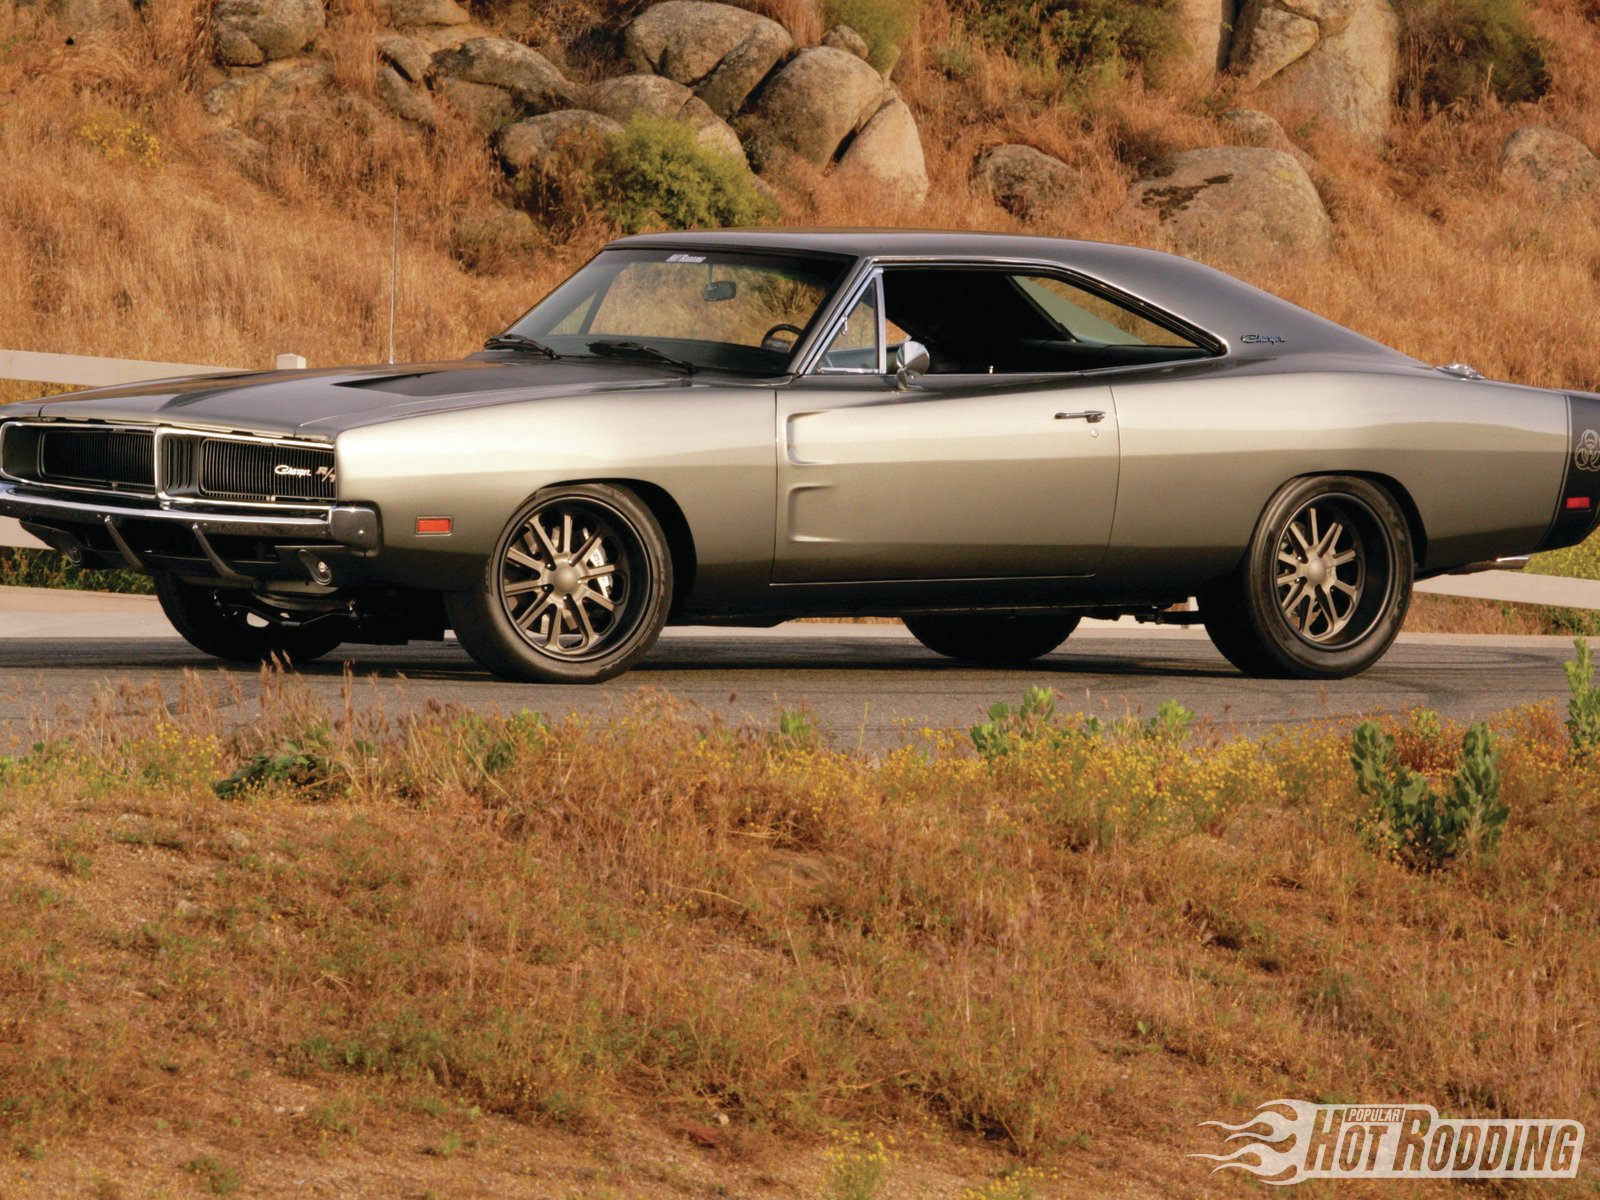 1969 dodge charger wallpaper and background image - Muscle cars wallpaper hd pack ...